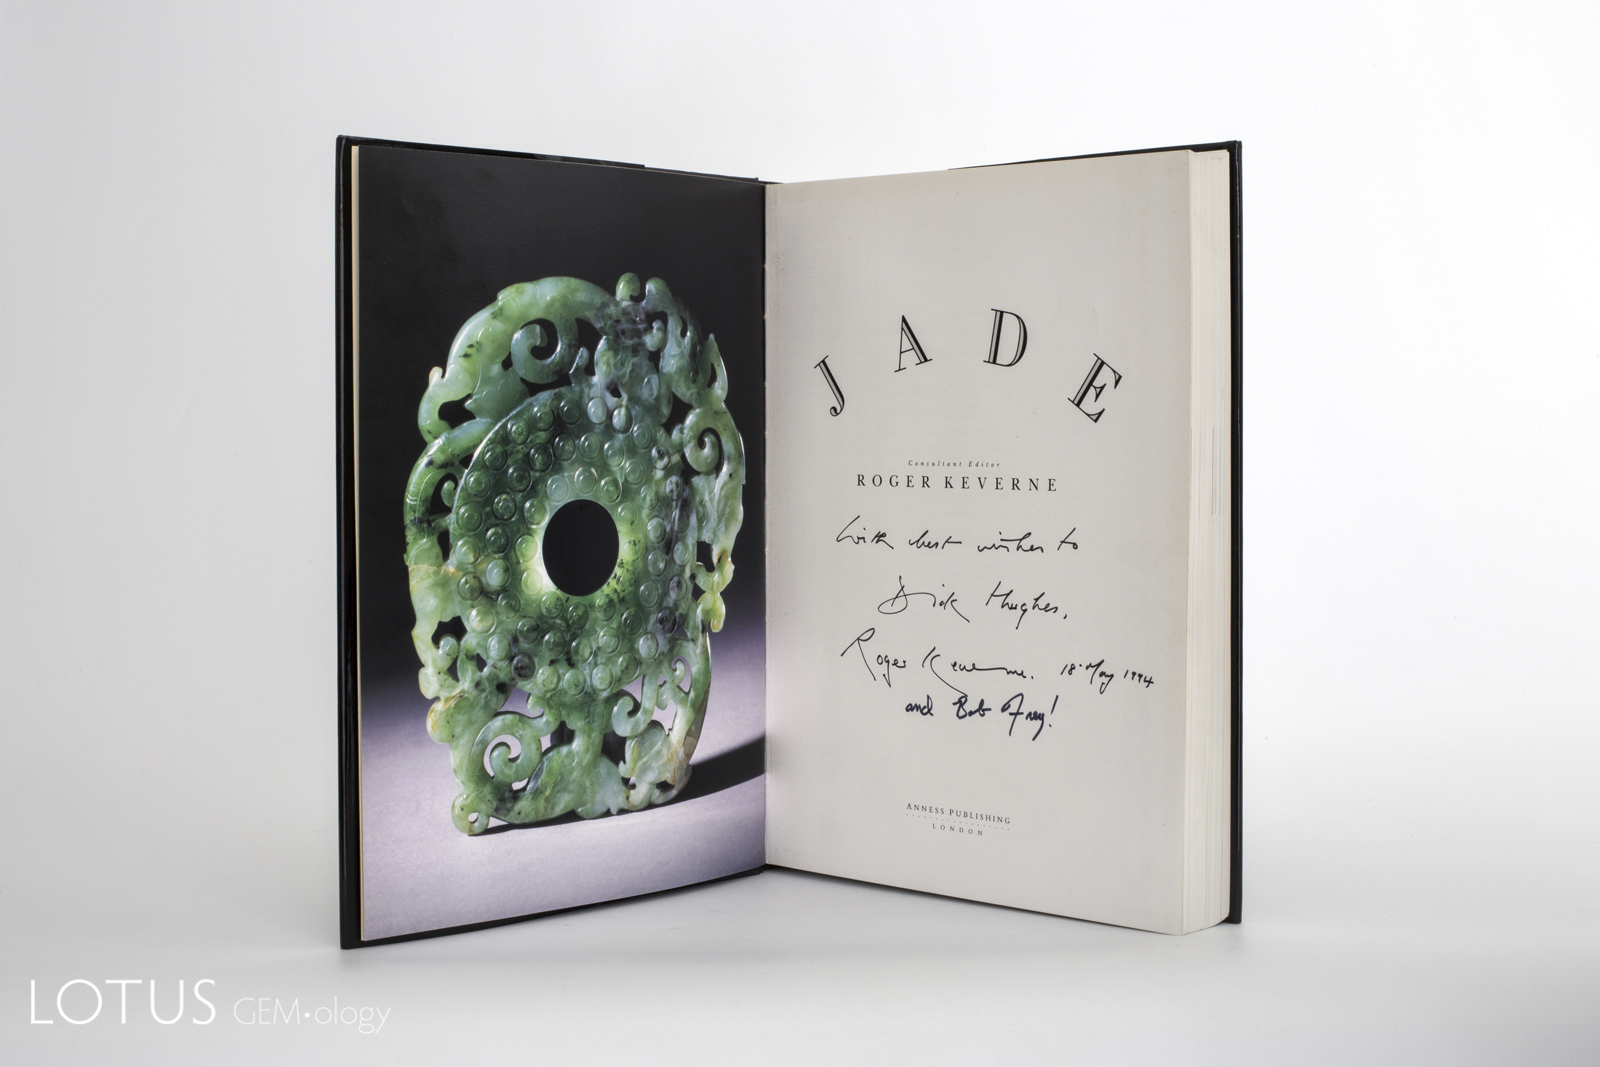 "Roger Keverne's 1991 Jade brought together experts from around the world. It is arguably the finest modern work on jade. This copy is signed by two of the authors to Richard Hughes. Such ""dedication"" copies are generally more valuable, particularly if the person they are dedicated to is famous."